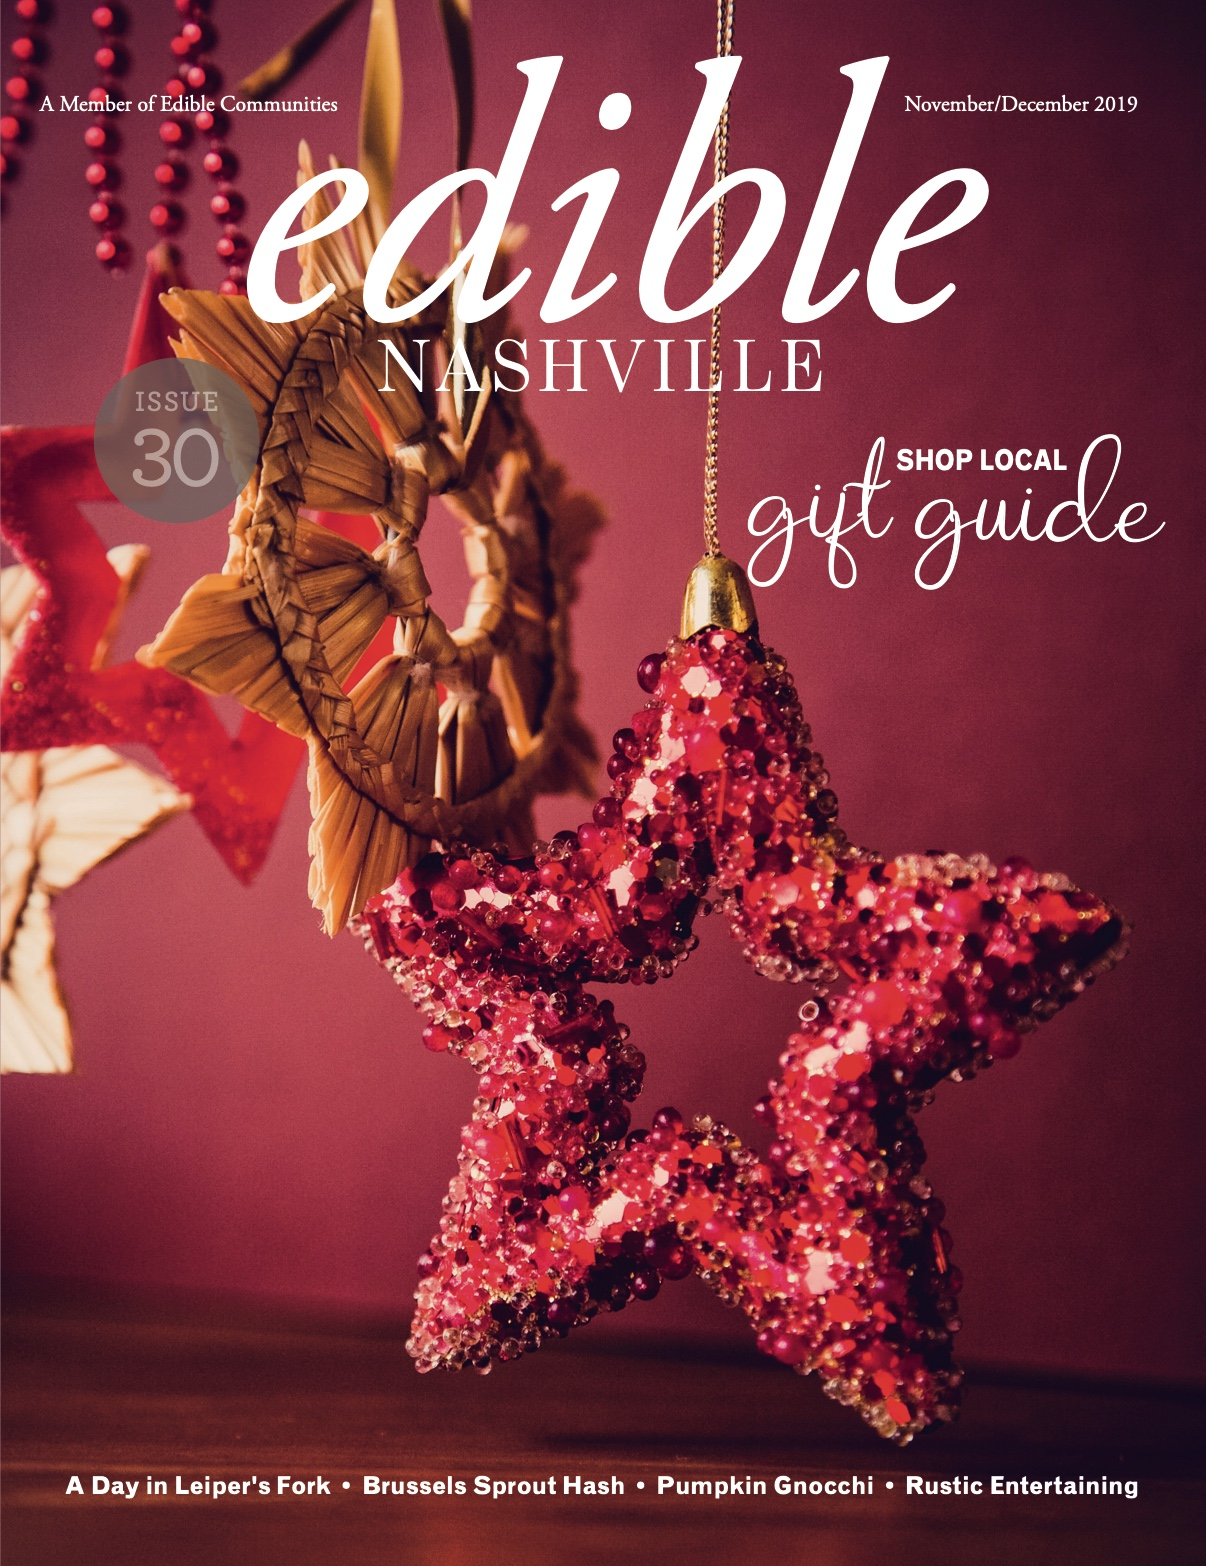 edible NASHVILLE Issue 30: Gift Guide